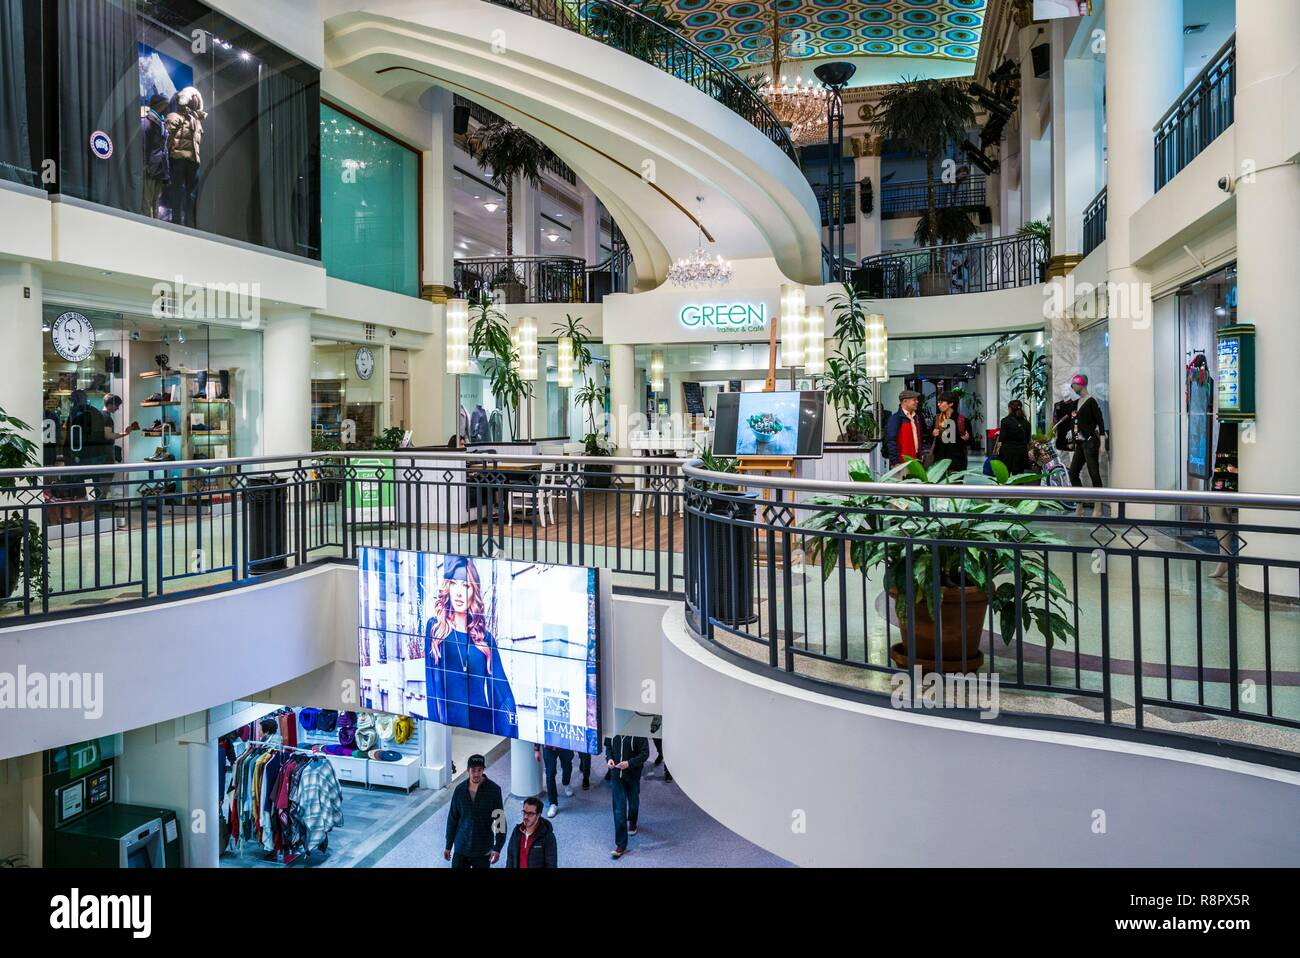 Canada, Quebec, Montreal, Les Cours Mont-Royal shopping mall in the former Mount Royal Hotel, once the largest hotel in the British Empire, interior Stock Photo